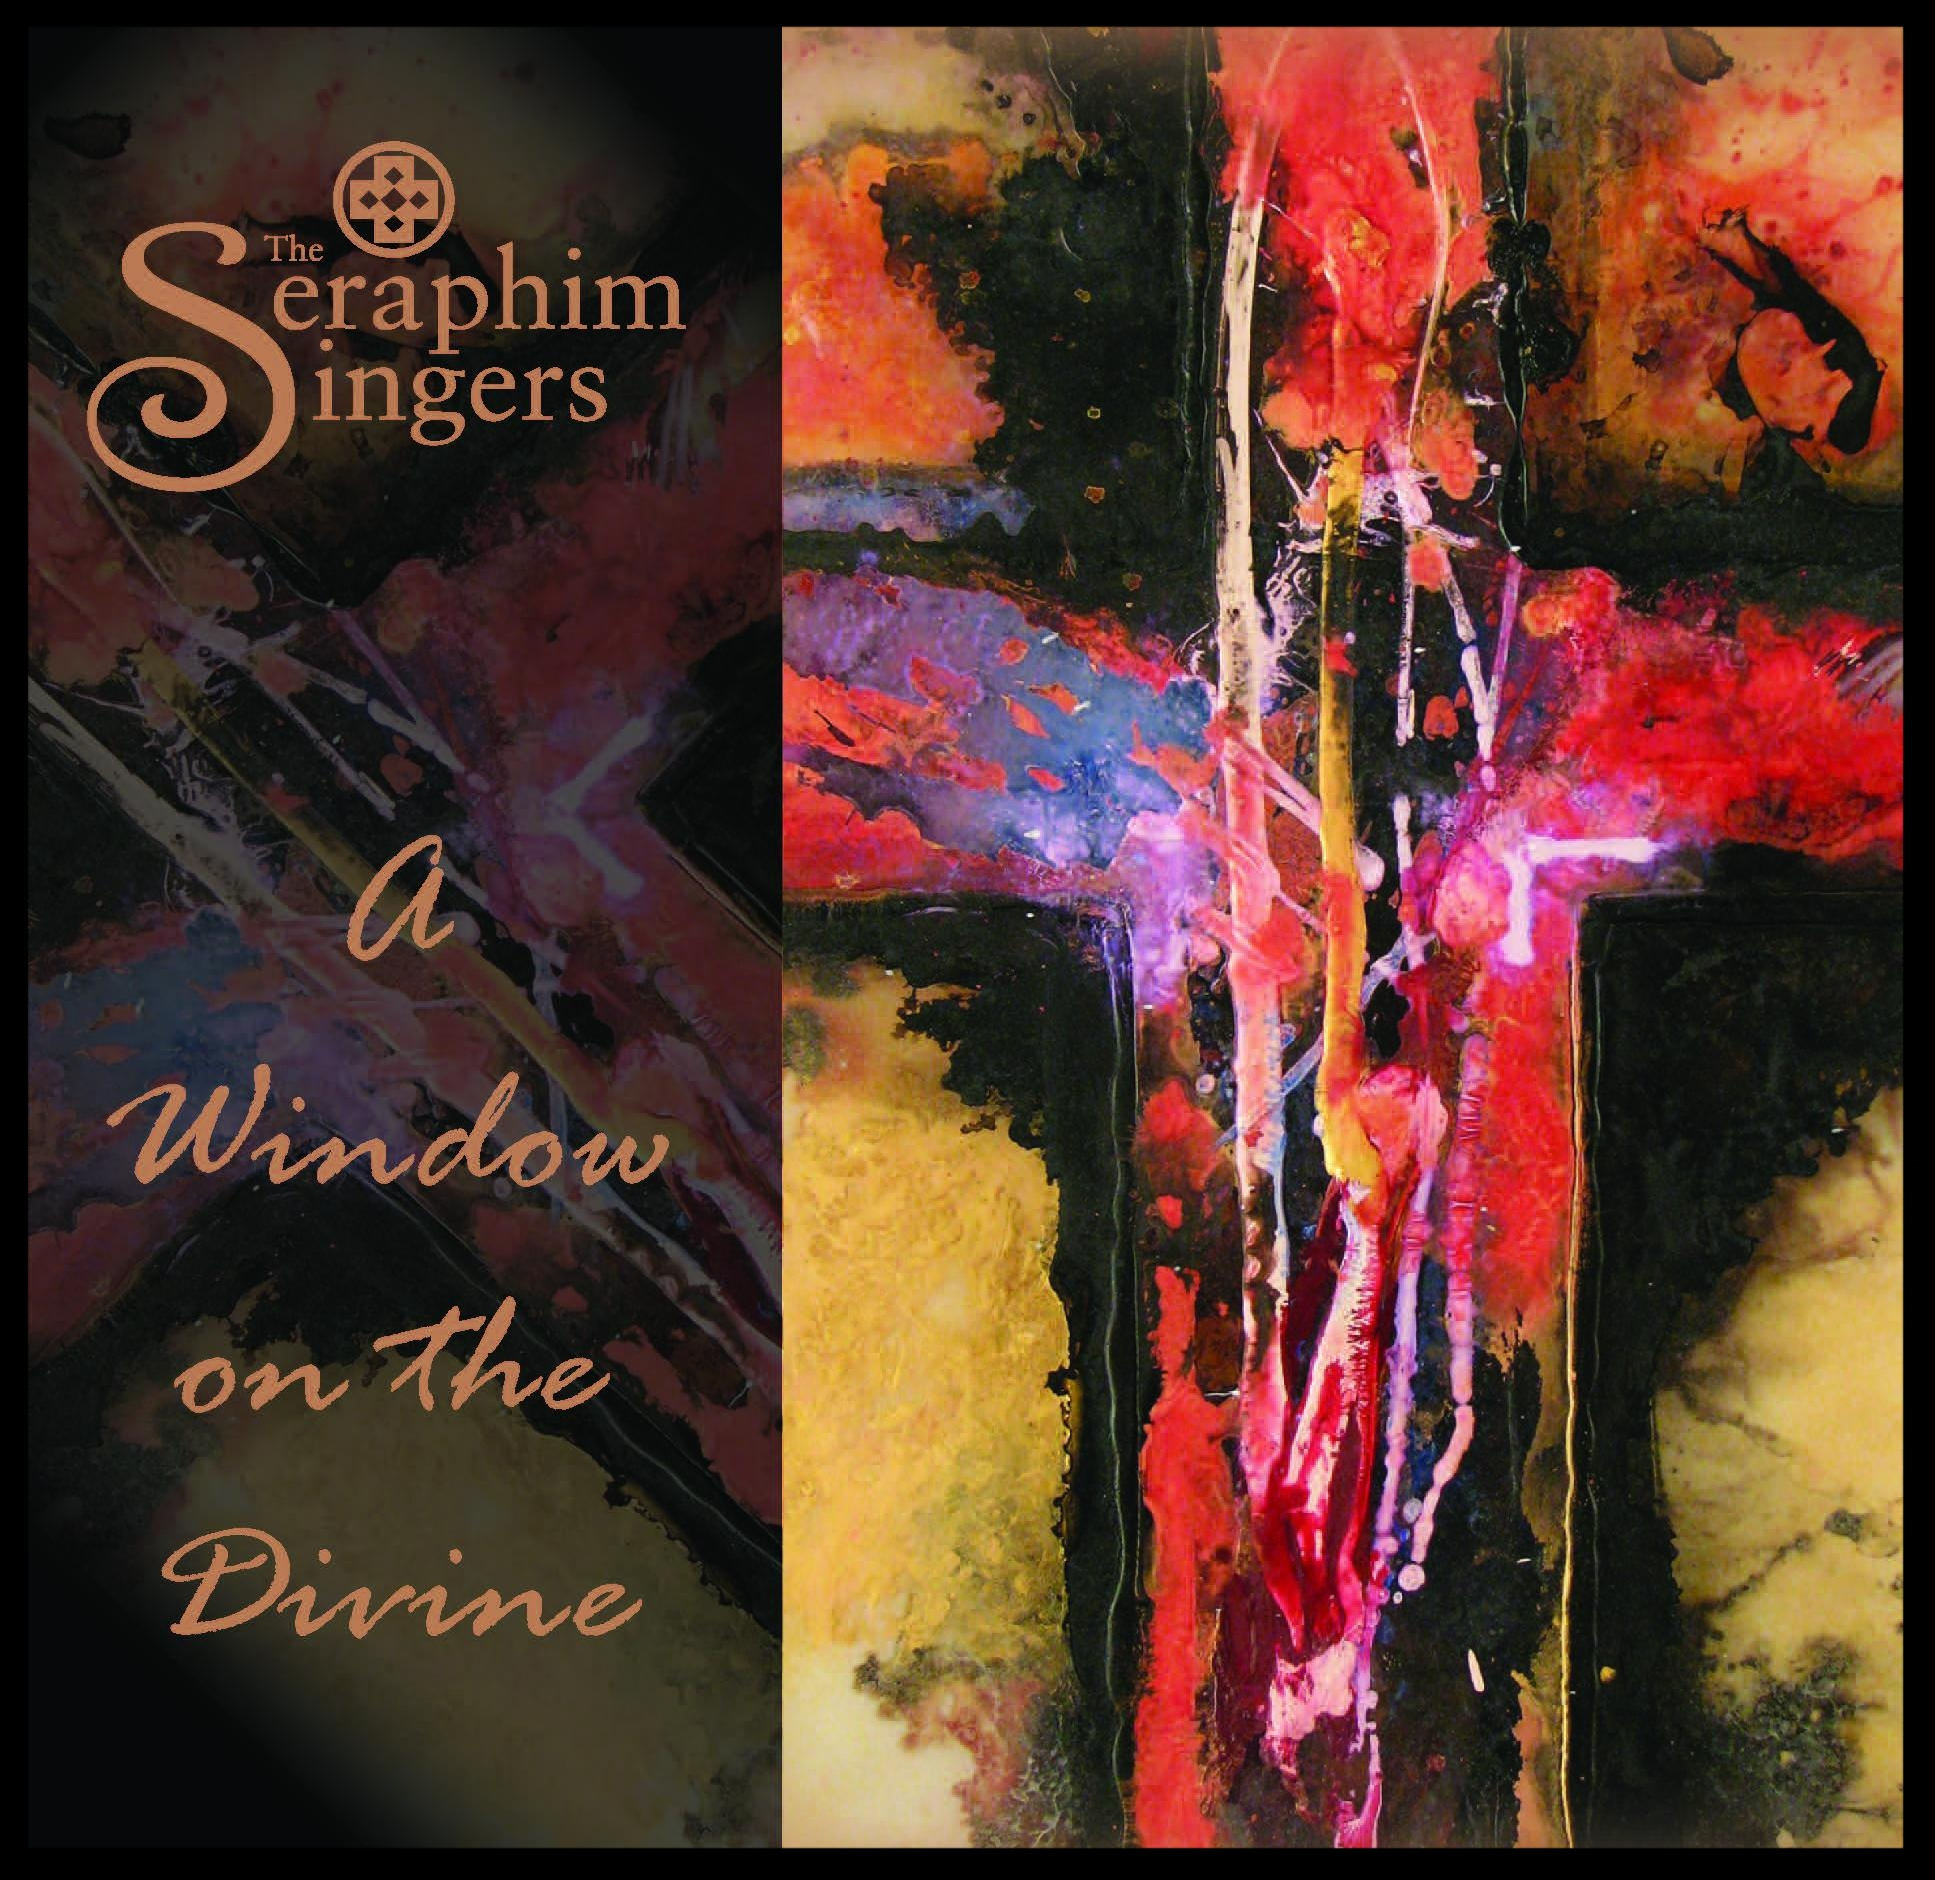 - A Window on the Divine, selected performances by the Seraphim Singers.  Album includes Ramsay's Levavi oculus from Three Psalms, as well as Elliot Gyger's Hebrew, Latin, Greek, and Francis Poulenc's Litanies a la Vierge Noire.